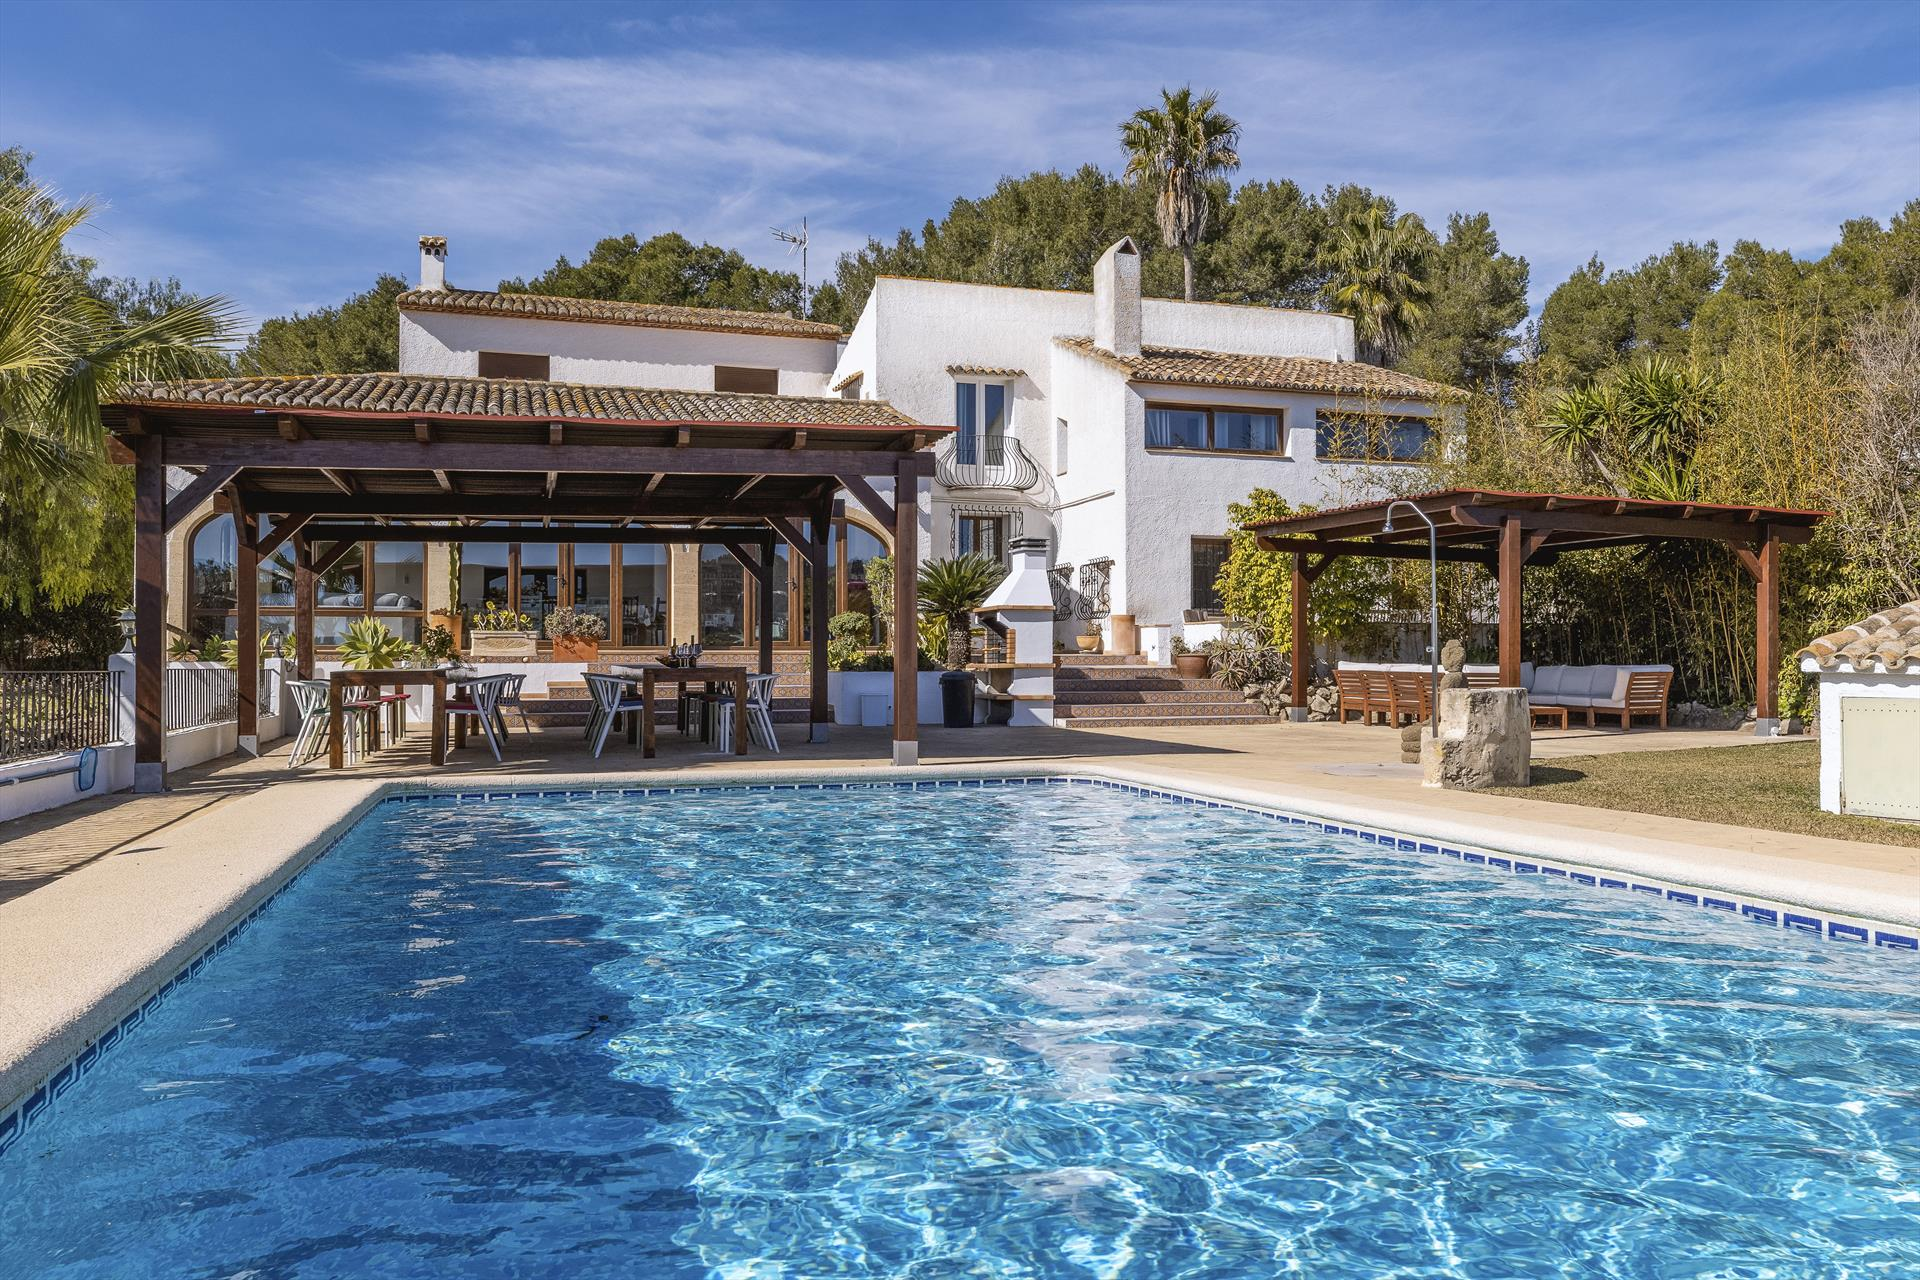 Casa Rosalia 22 pax, Large and cheerful villa  with private pool in Javea, on the Costa Blanca, Spain for 22 persons.....